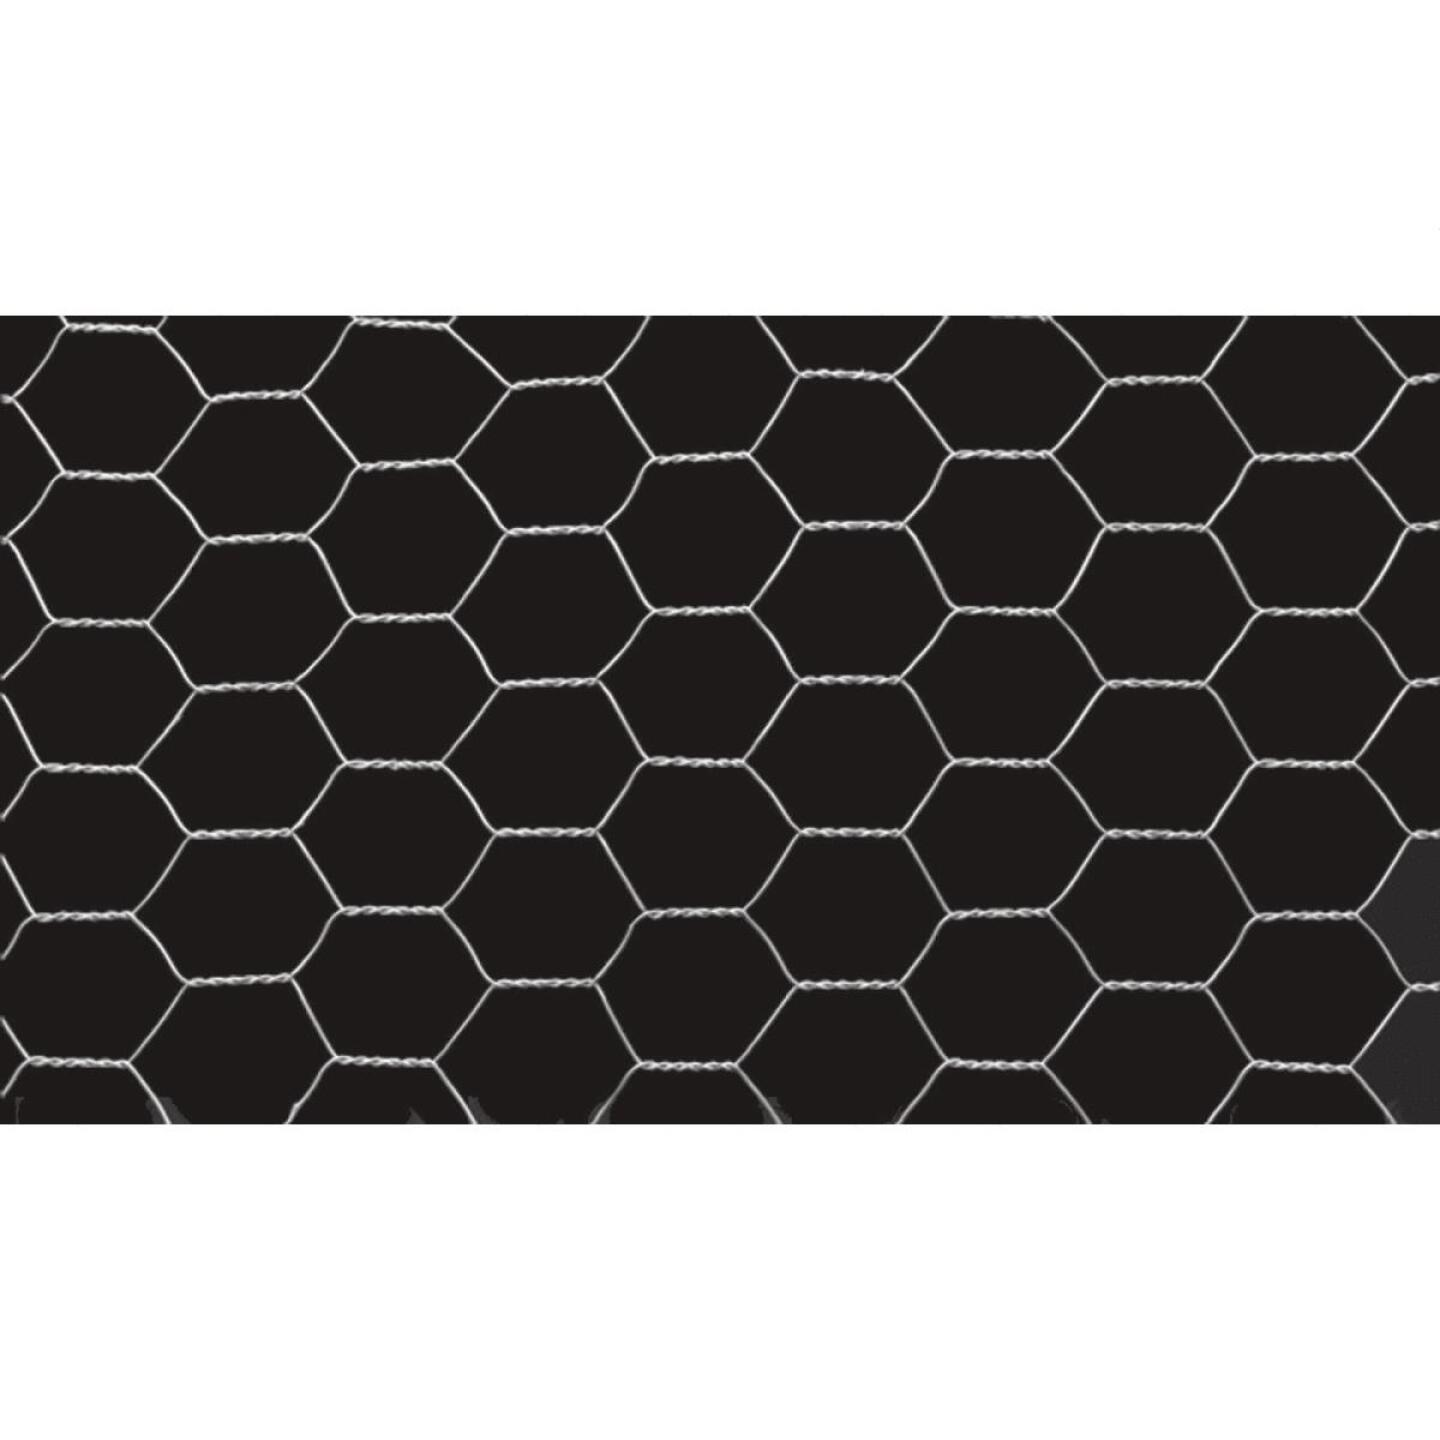 1/2 In. x 36 In. H. x 10 Ft. L. Hexagonal Wire Poultry Netting Image 3